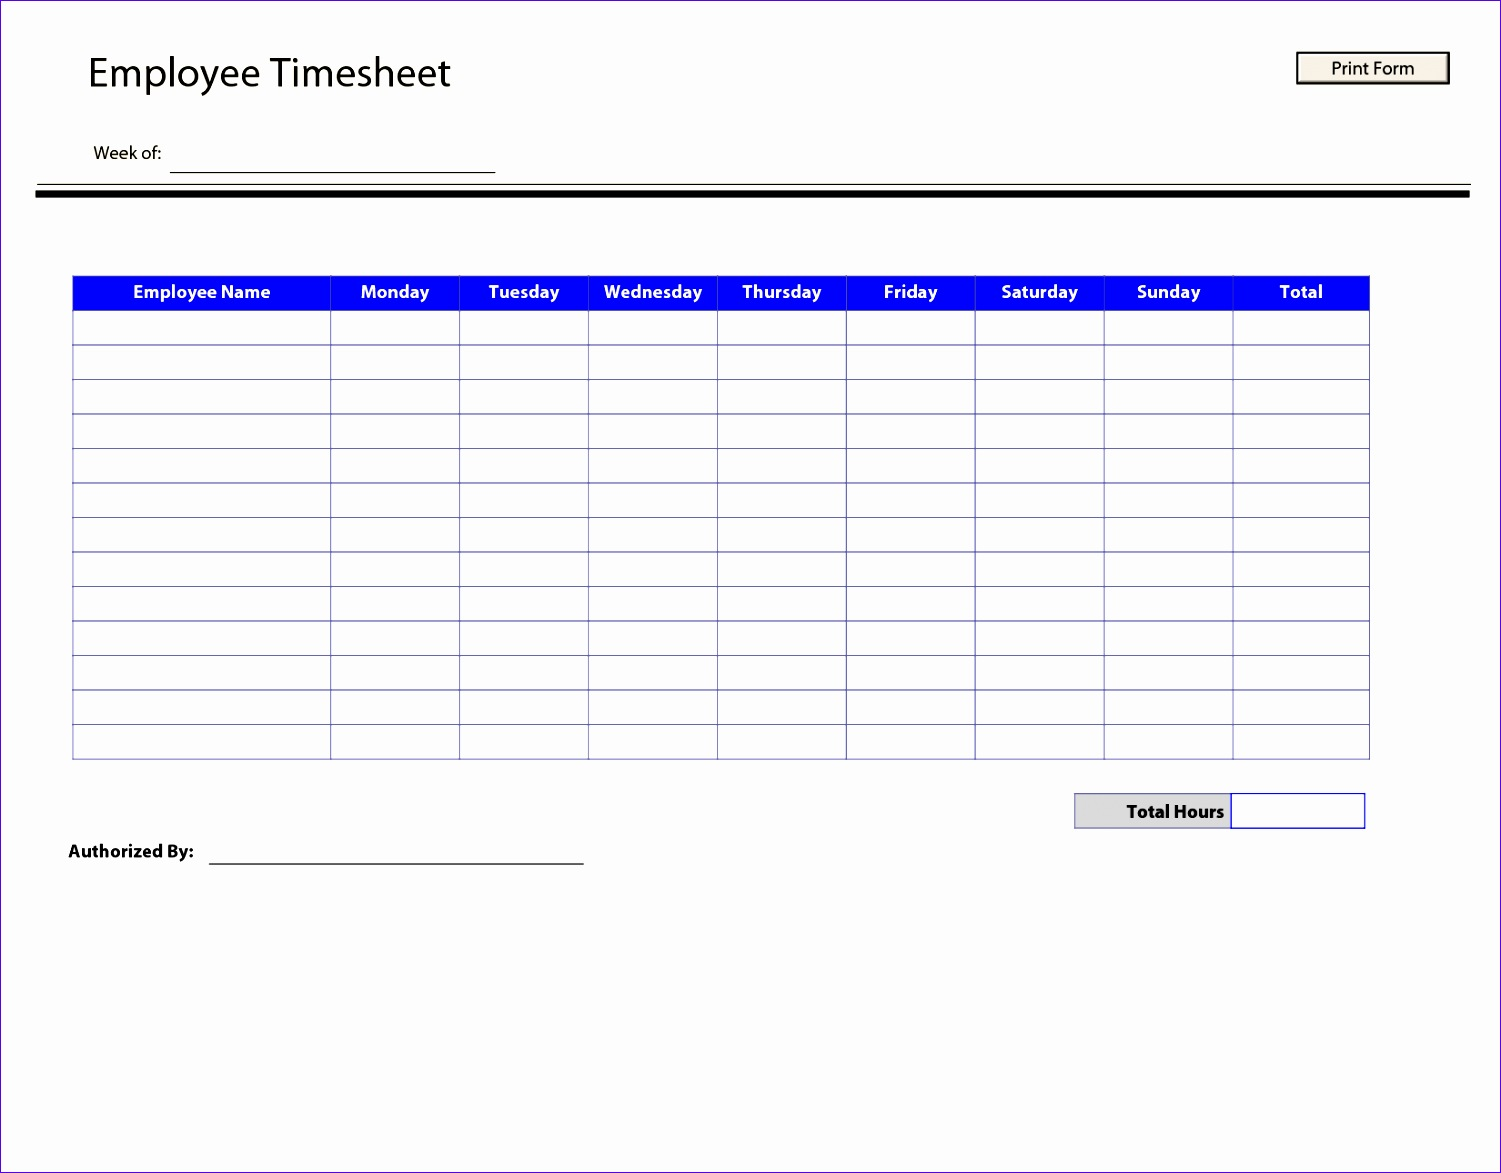 Employee Sign In Sheet Template Excel Vaief New Printable Time Sheets